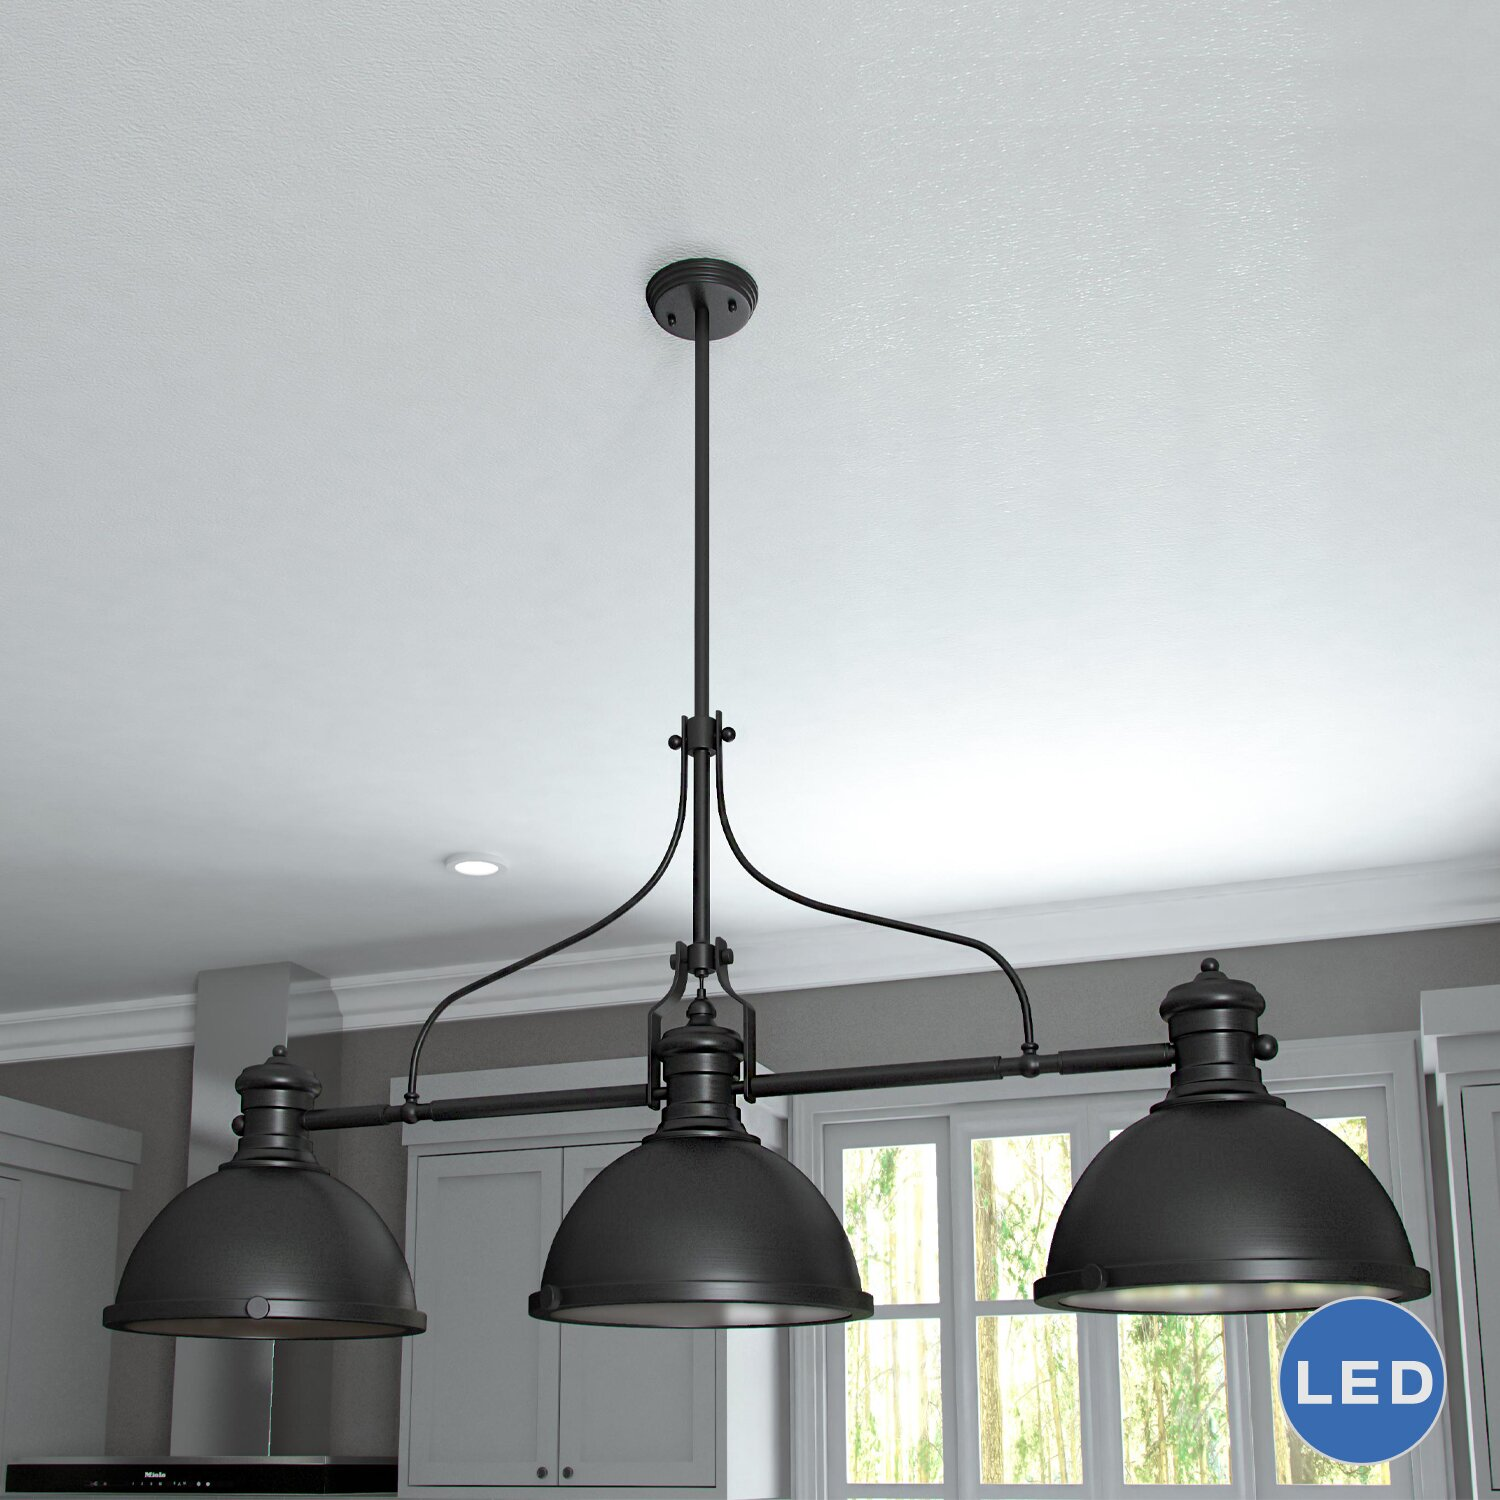 3 light pendant island kitchen lighting vonnlighting dorado 3 light kitchen island pendant 8979